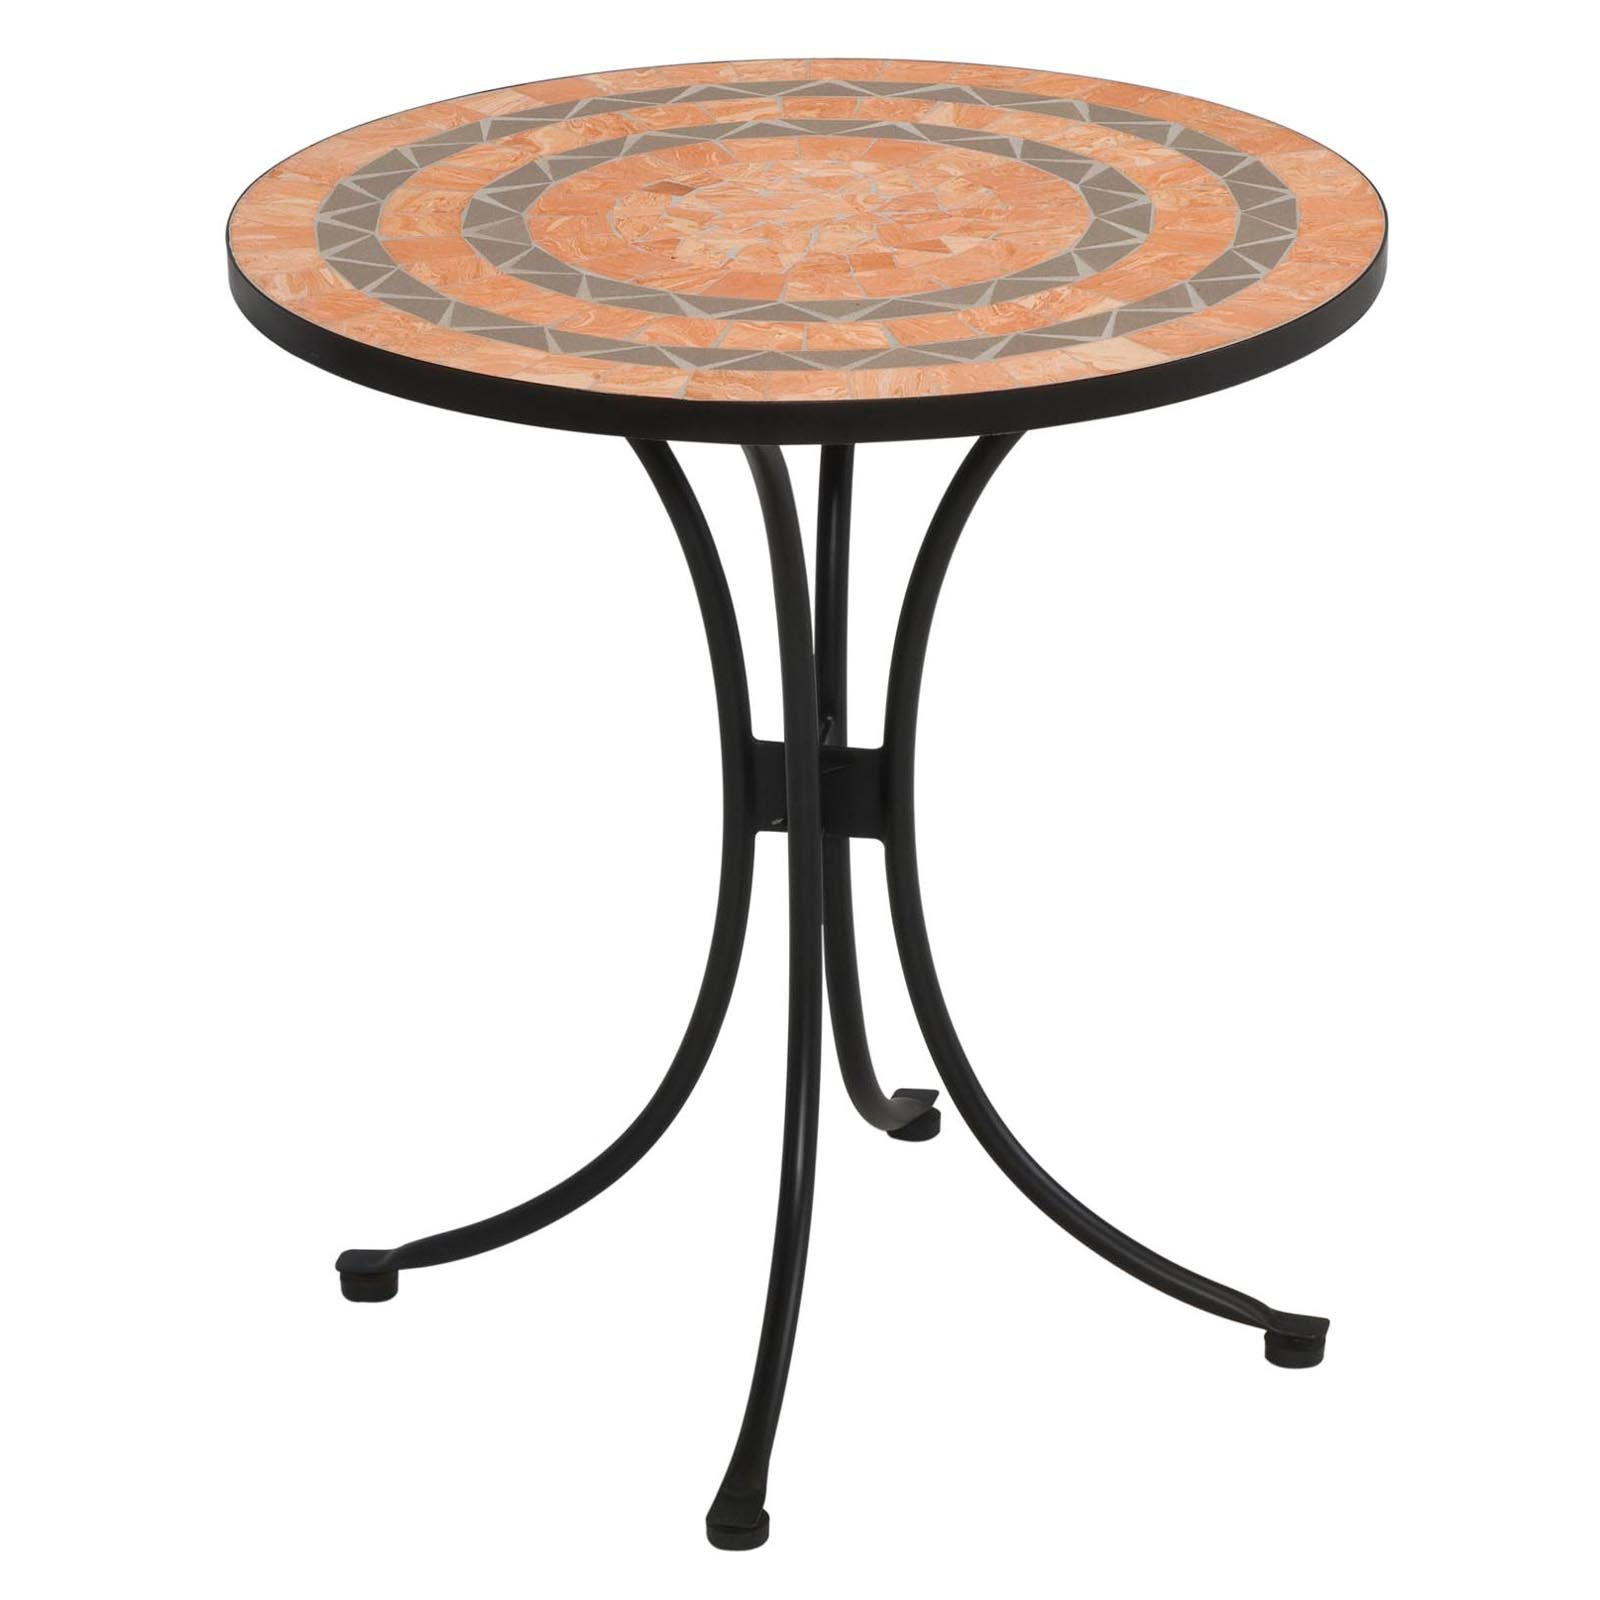 Home Styles Terra Cotta Tile Top Outdoor Bistro Table, Terra Cotta